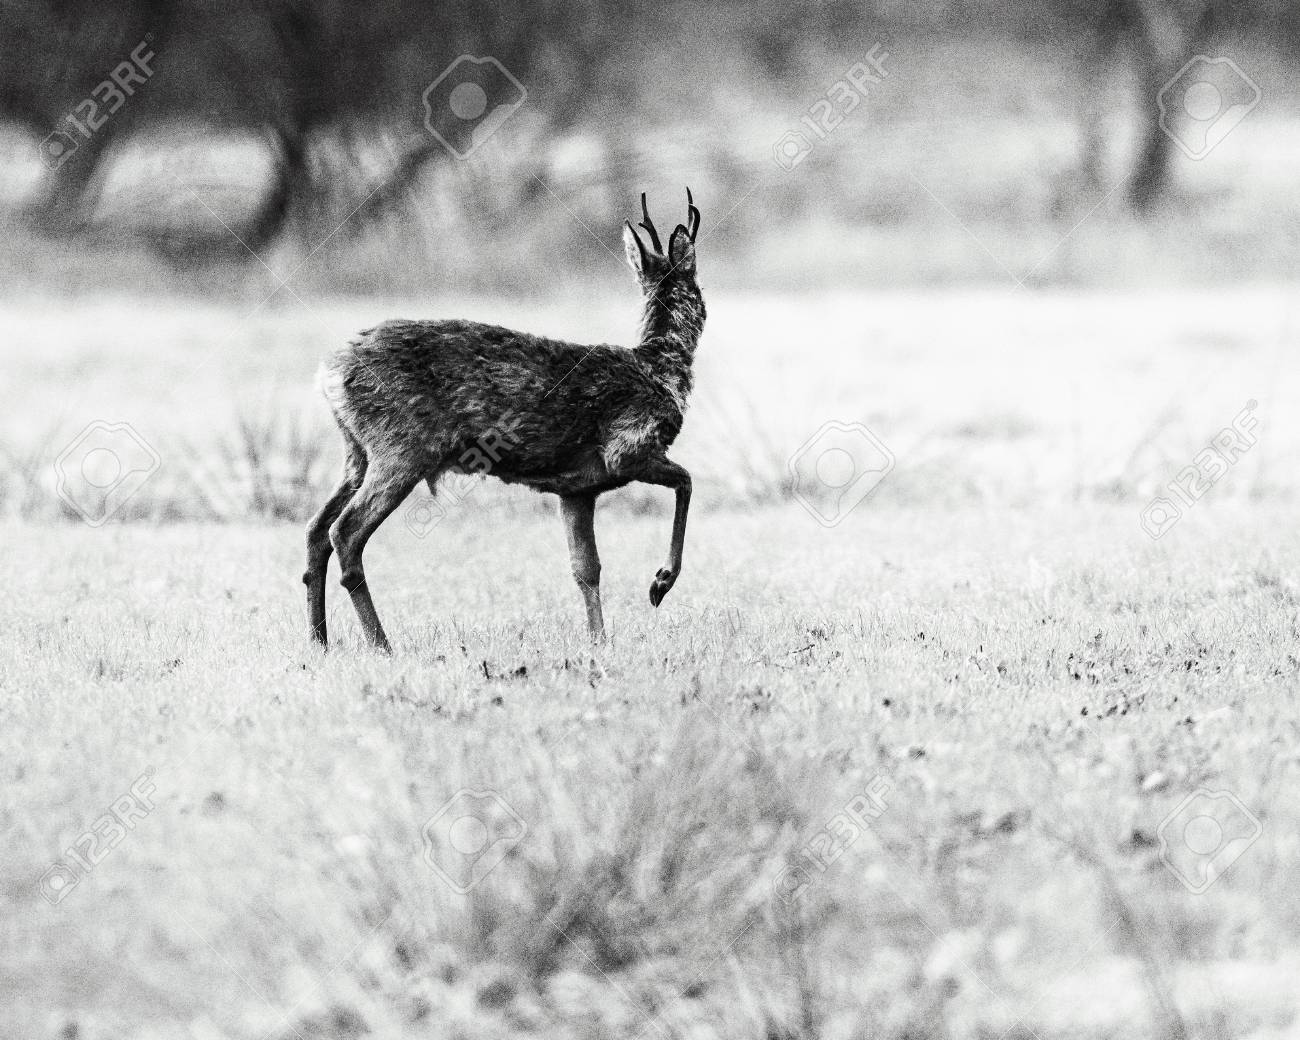 Old black and white photo of roe deer buck with one front leg